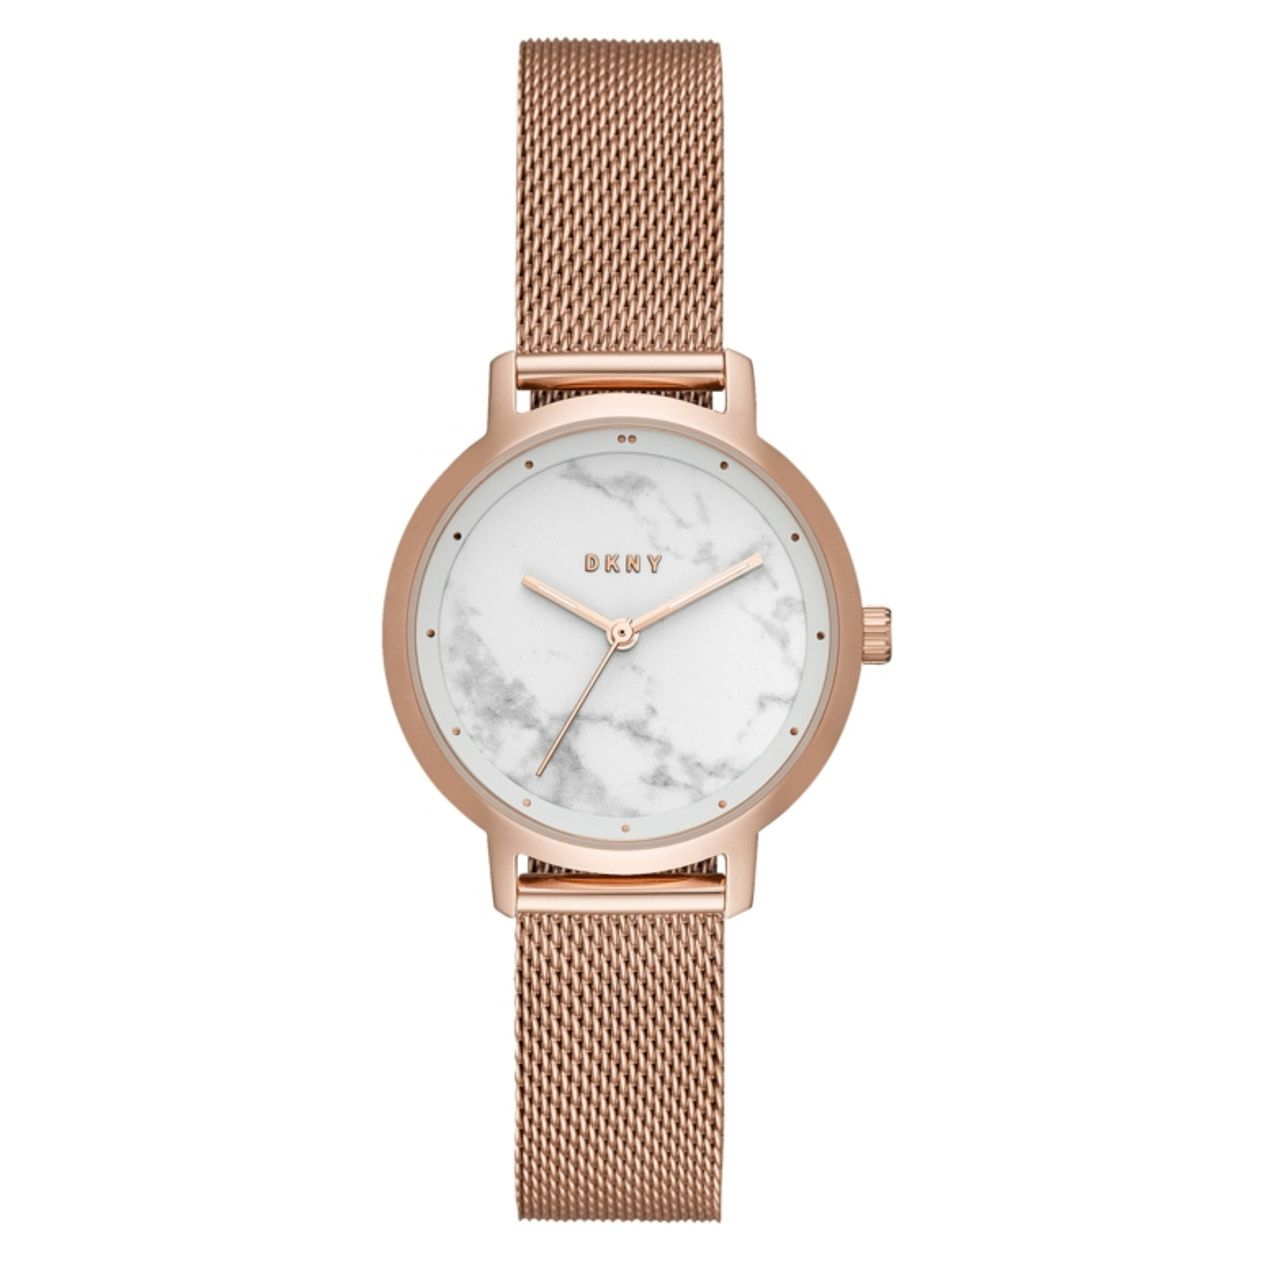 DKNY Modernist Ladies' Rose Gold Tone Mesh Bracelet Watch - Product number 9428186